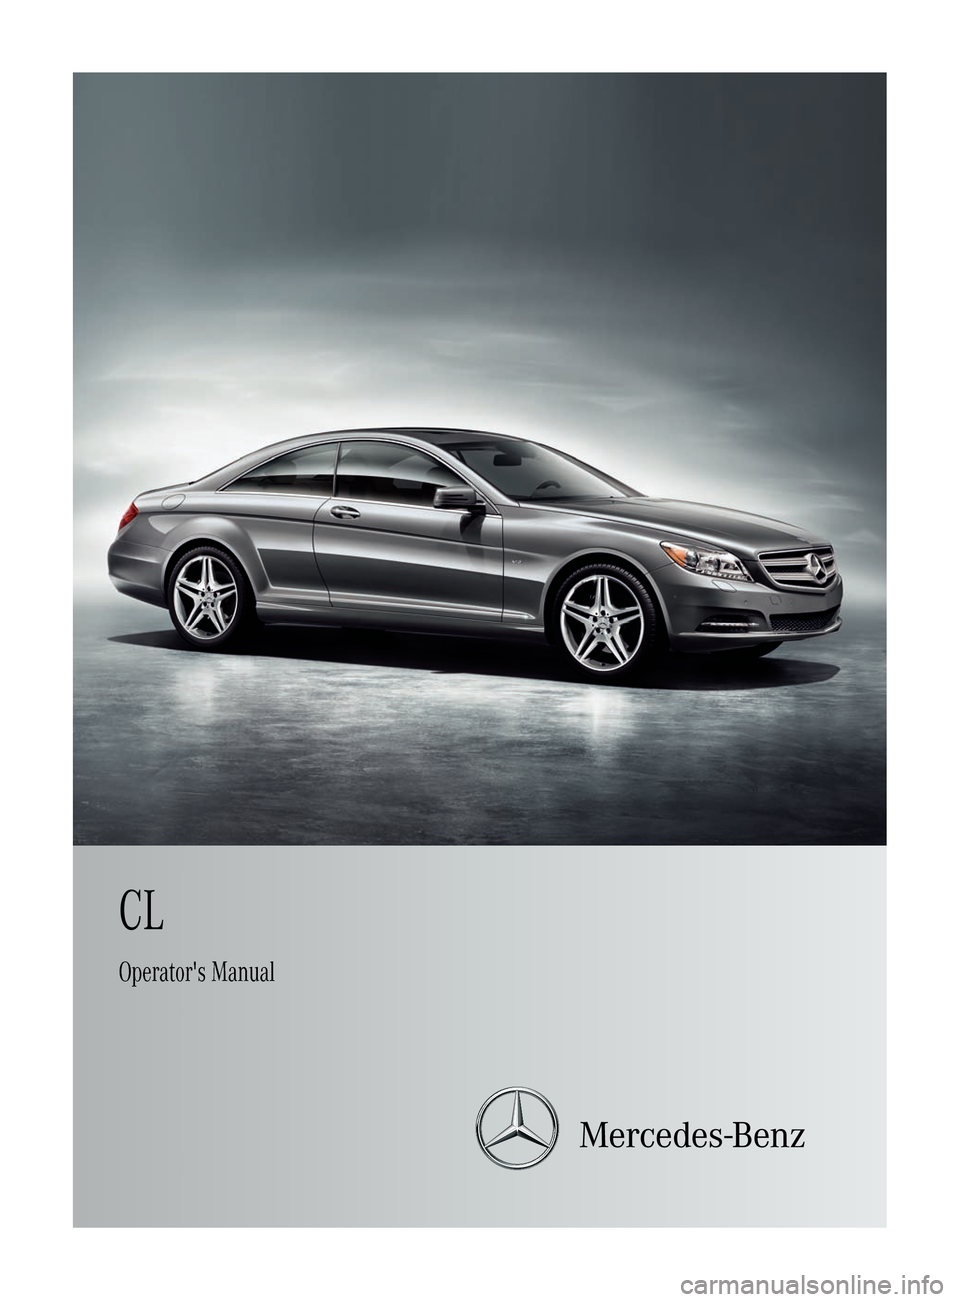 MERCEDES-BENZ CL-Class 2011 C216 Owners Manual, Page 1